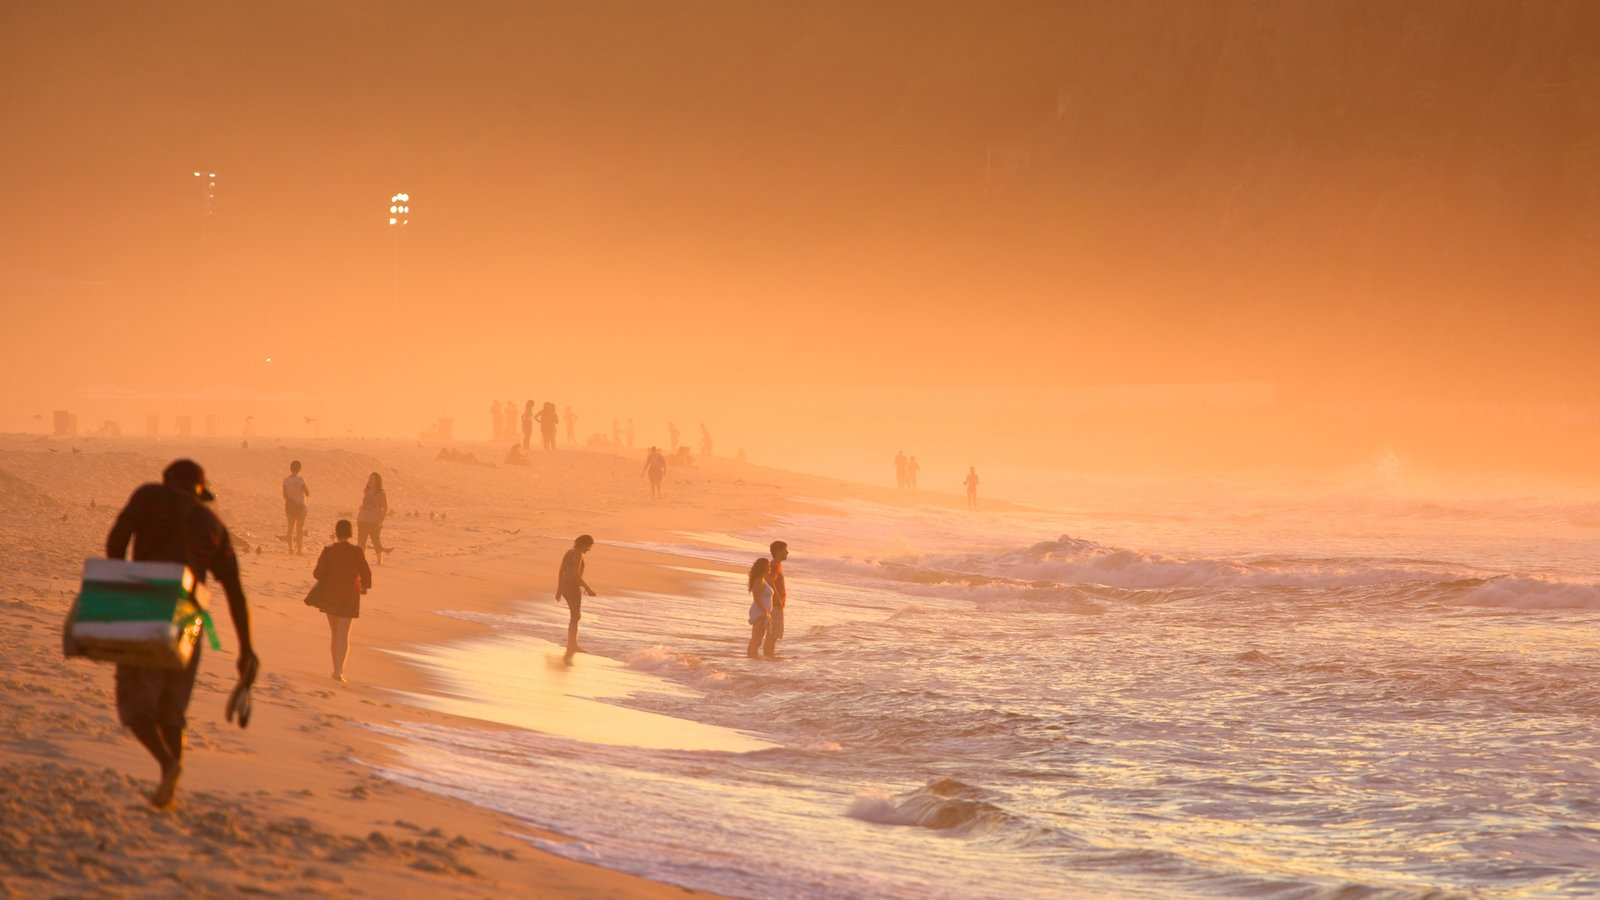 Copacabana Beach featuring a sandy beach, mist or fog and a sunset